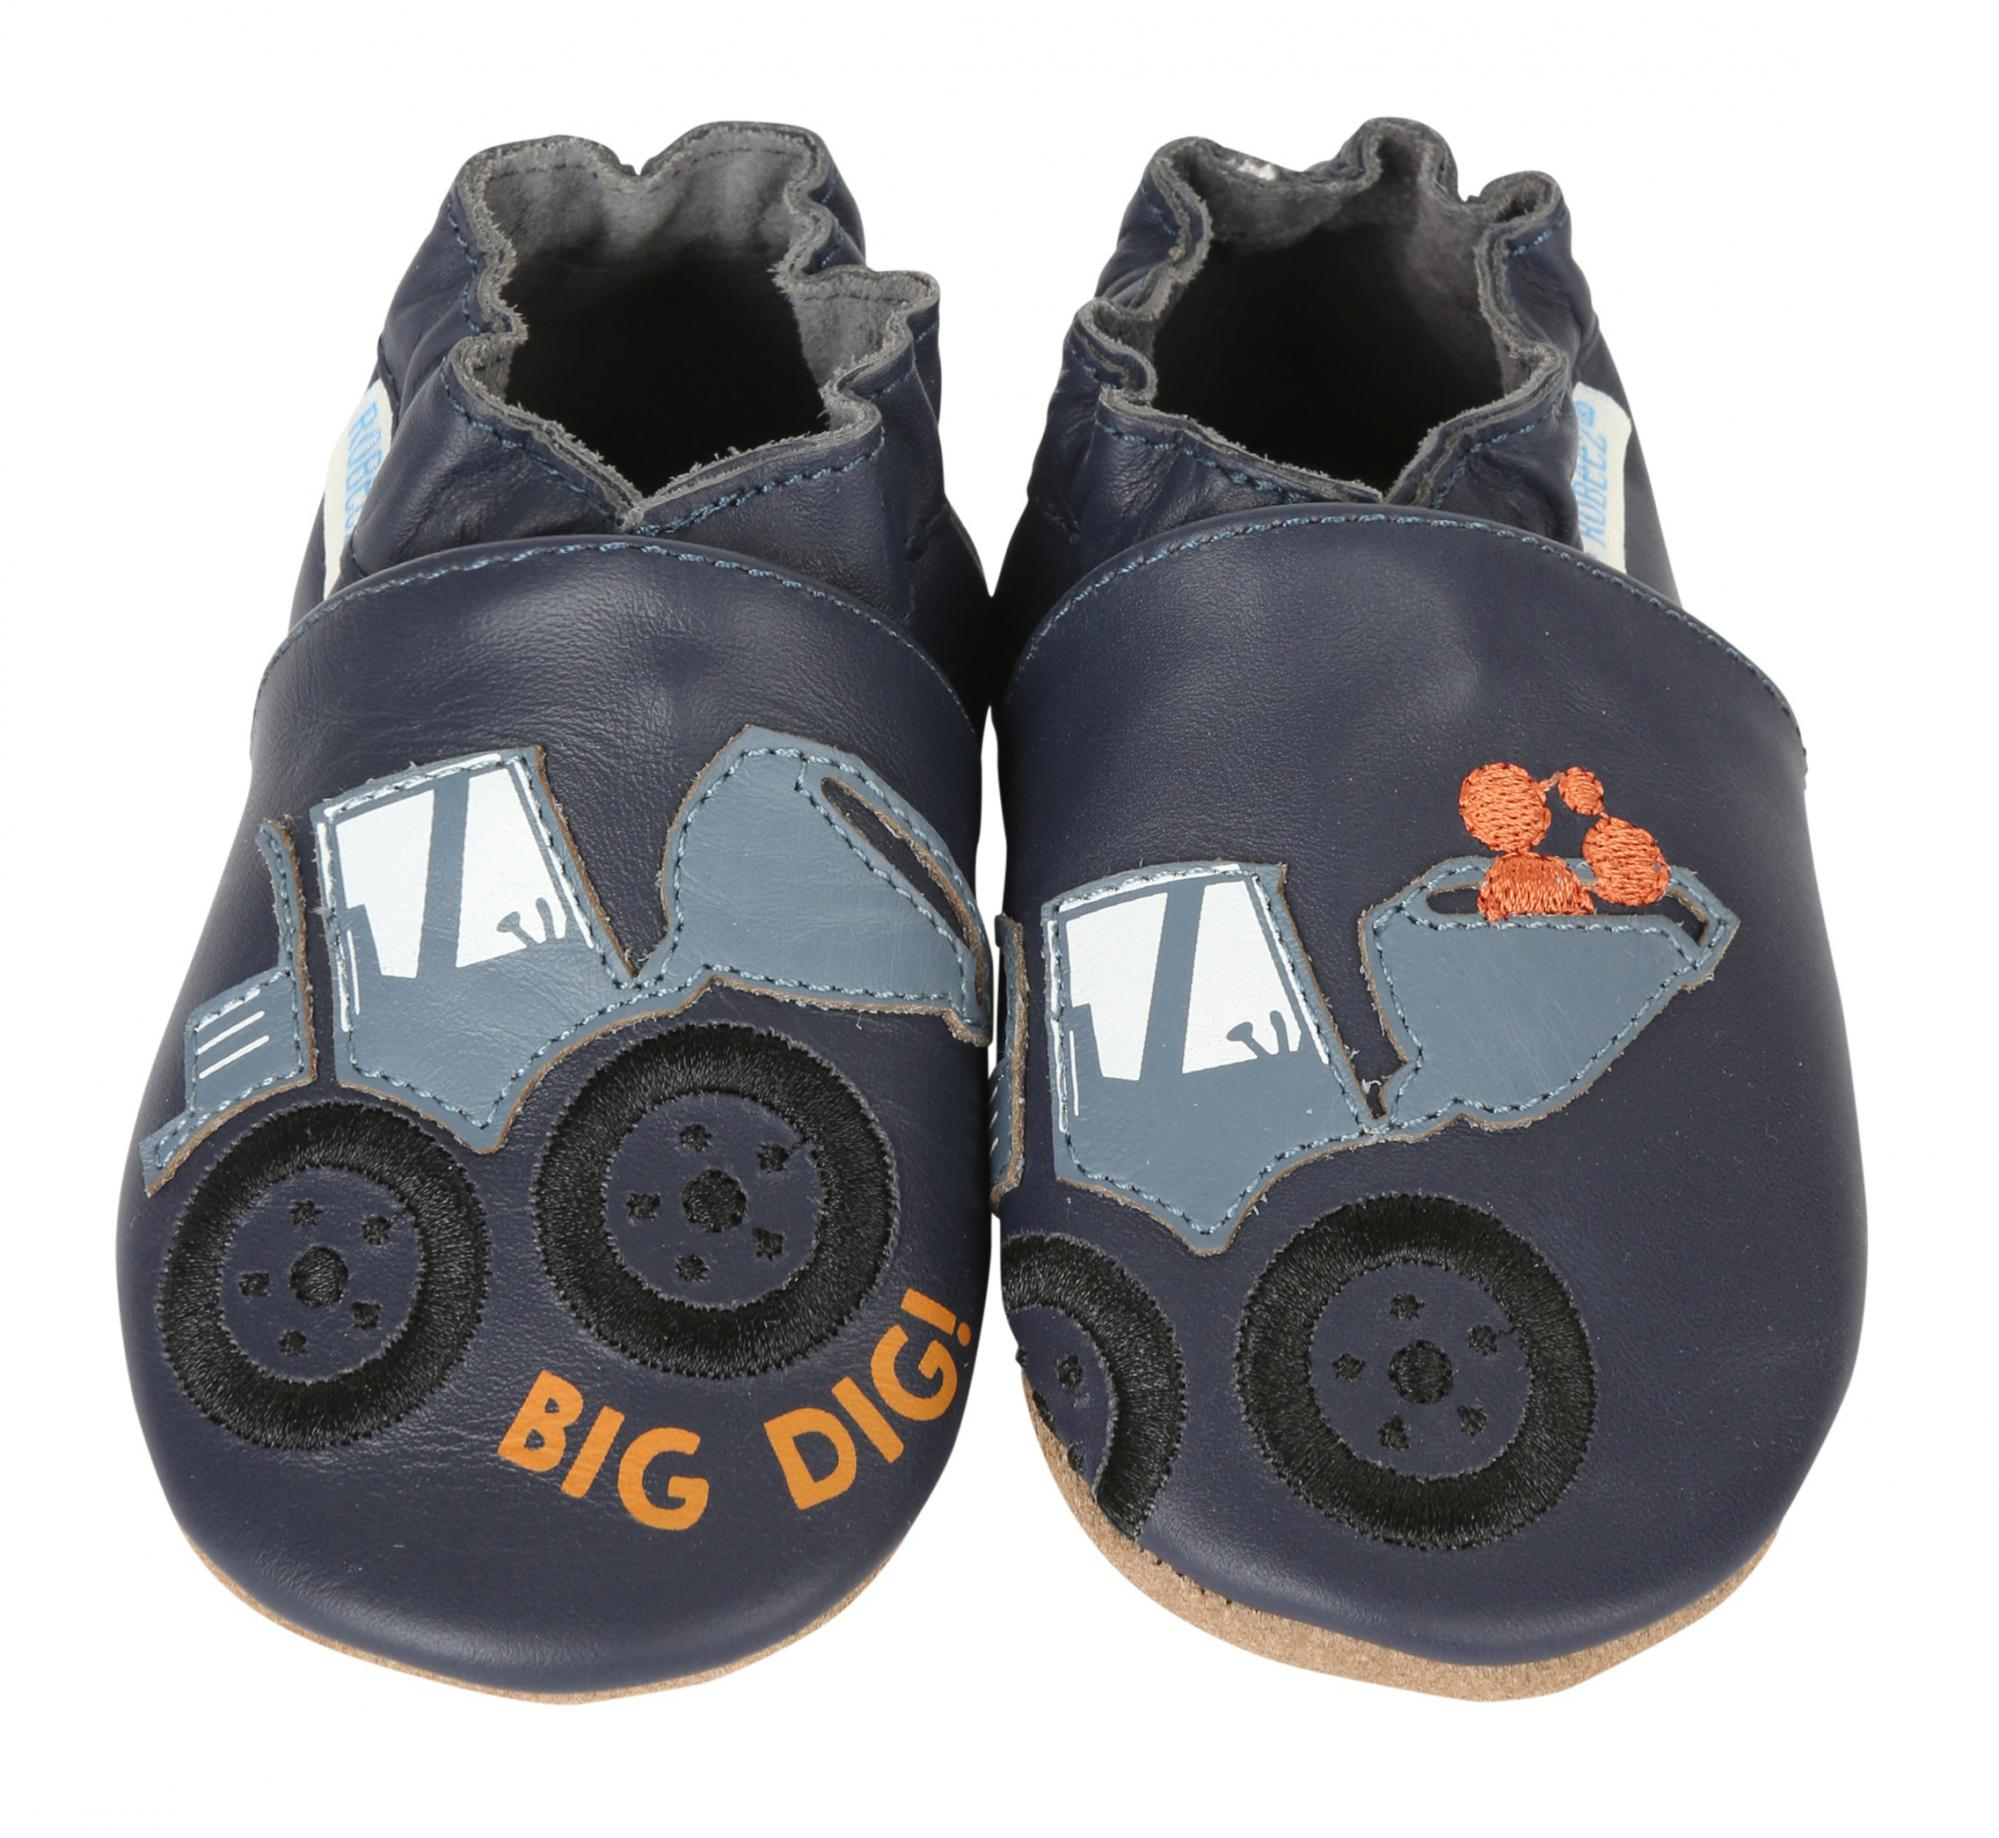 robeez-soft-sole-baby-shoes-big-dig-navy.jpg